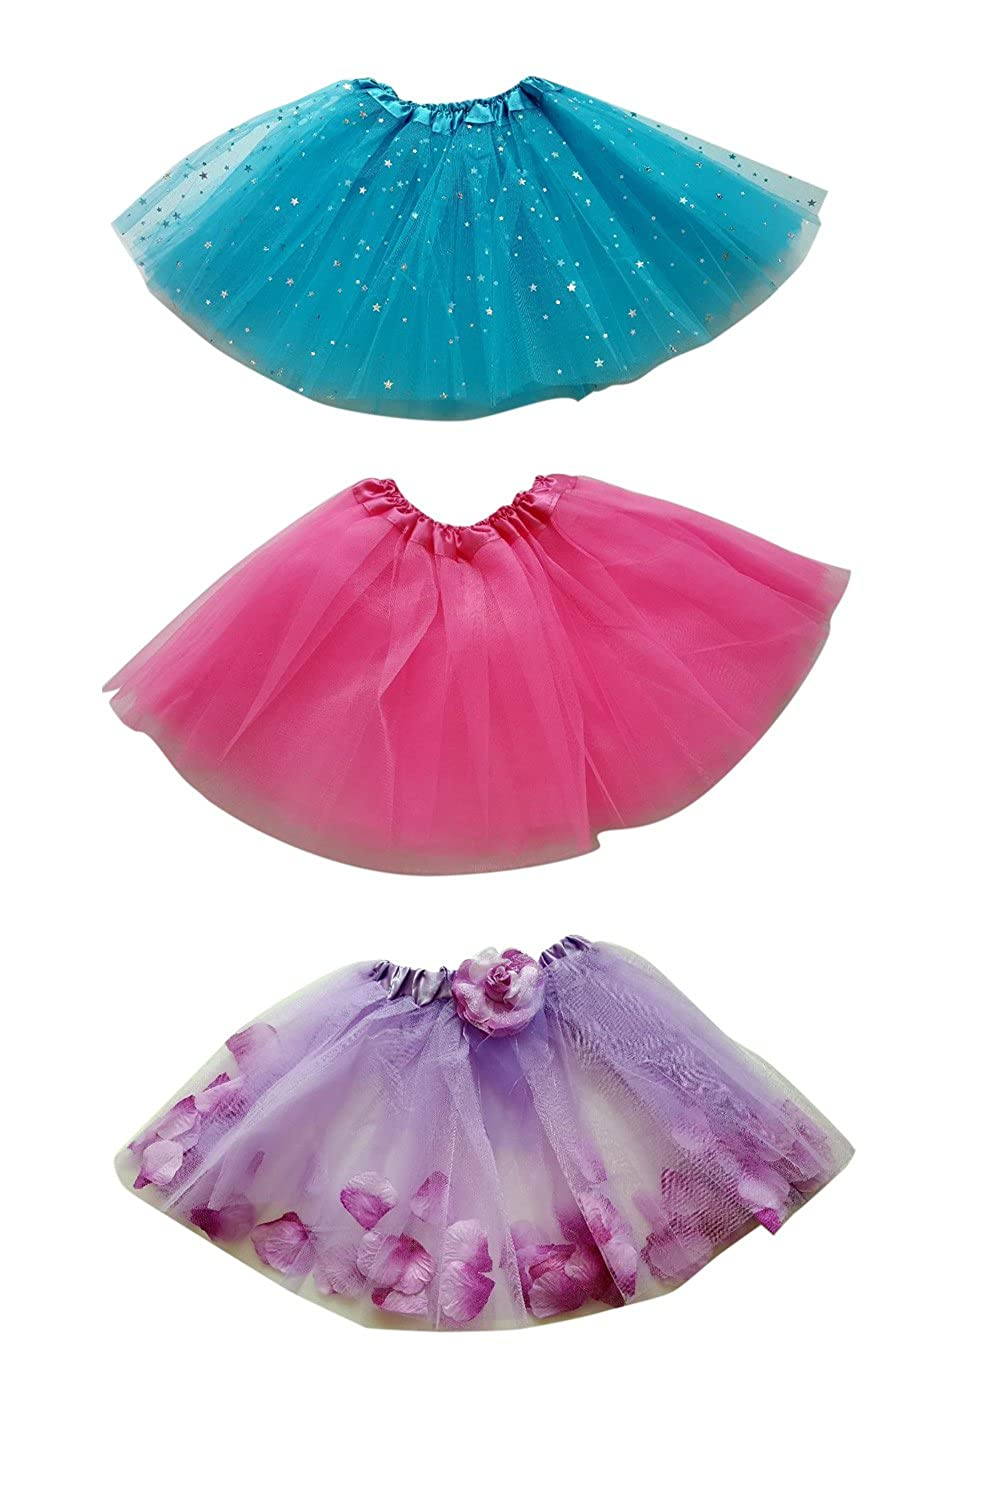 FANCYKIDS Girls Kids Princess Party Tutu Ballet Dance Play Tutus (3-Pack)